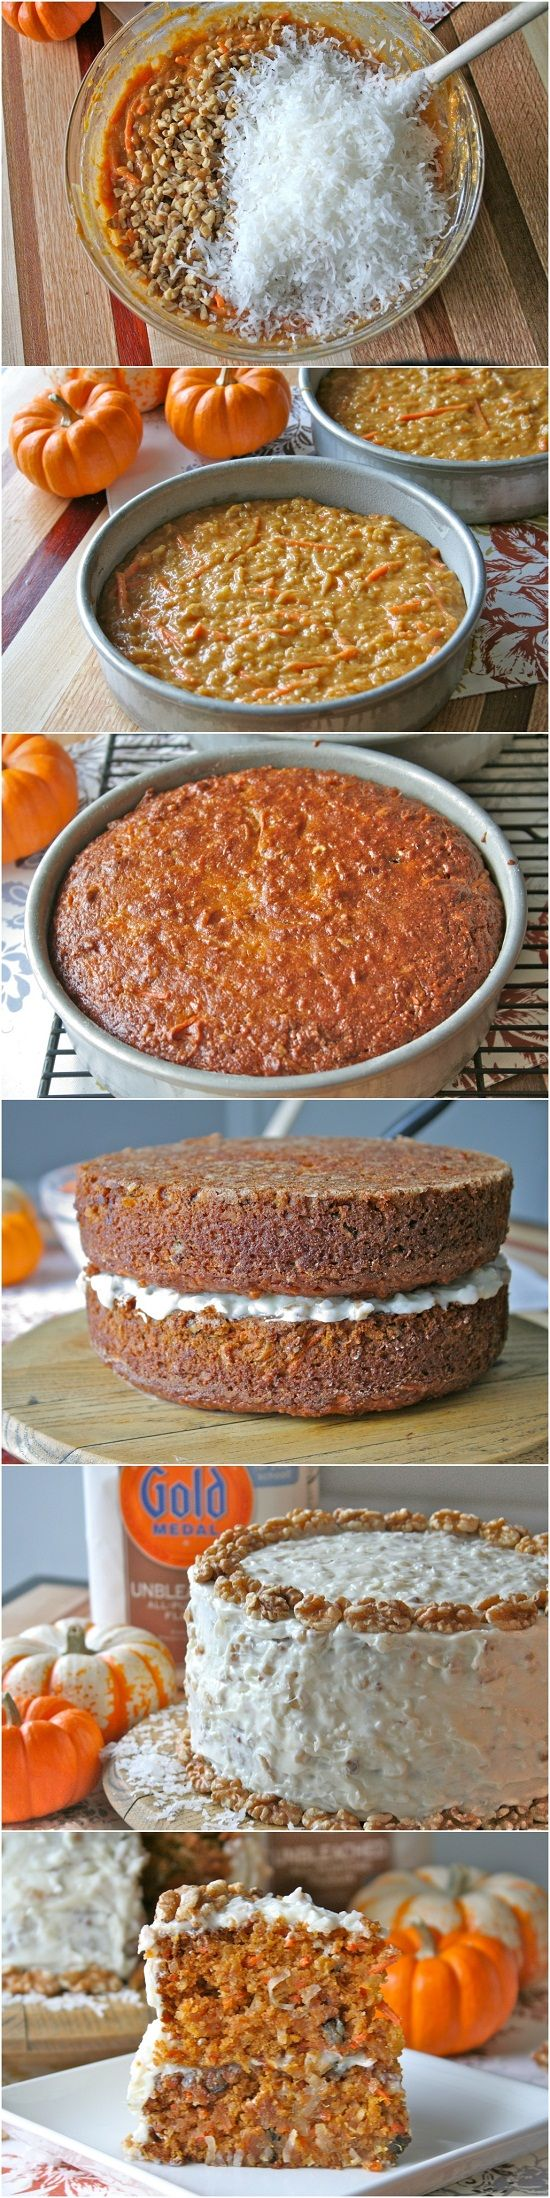 Pumpkin Carrot Cake Recipe